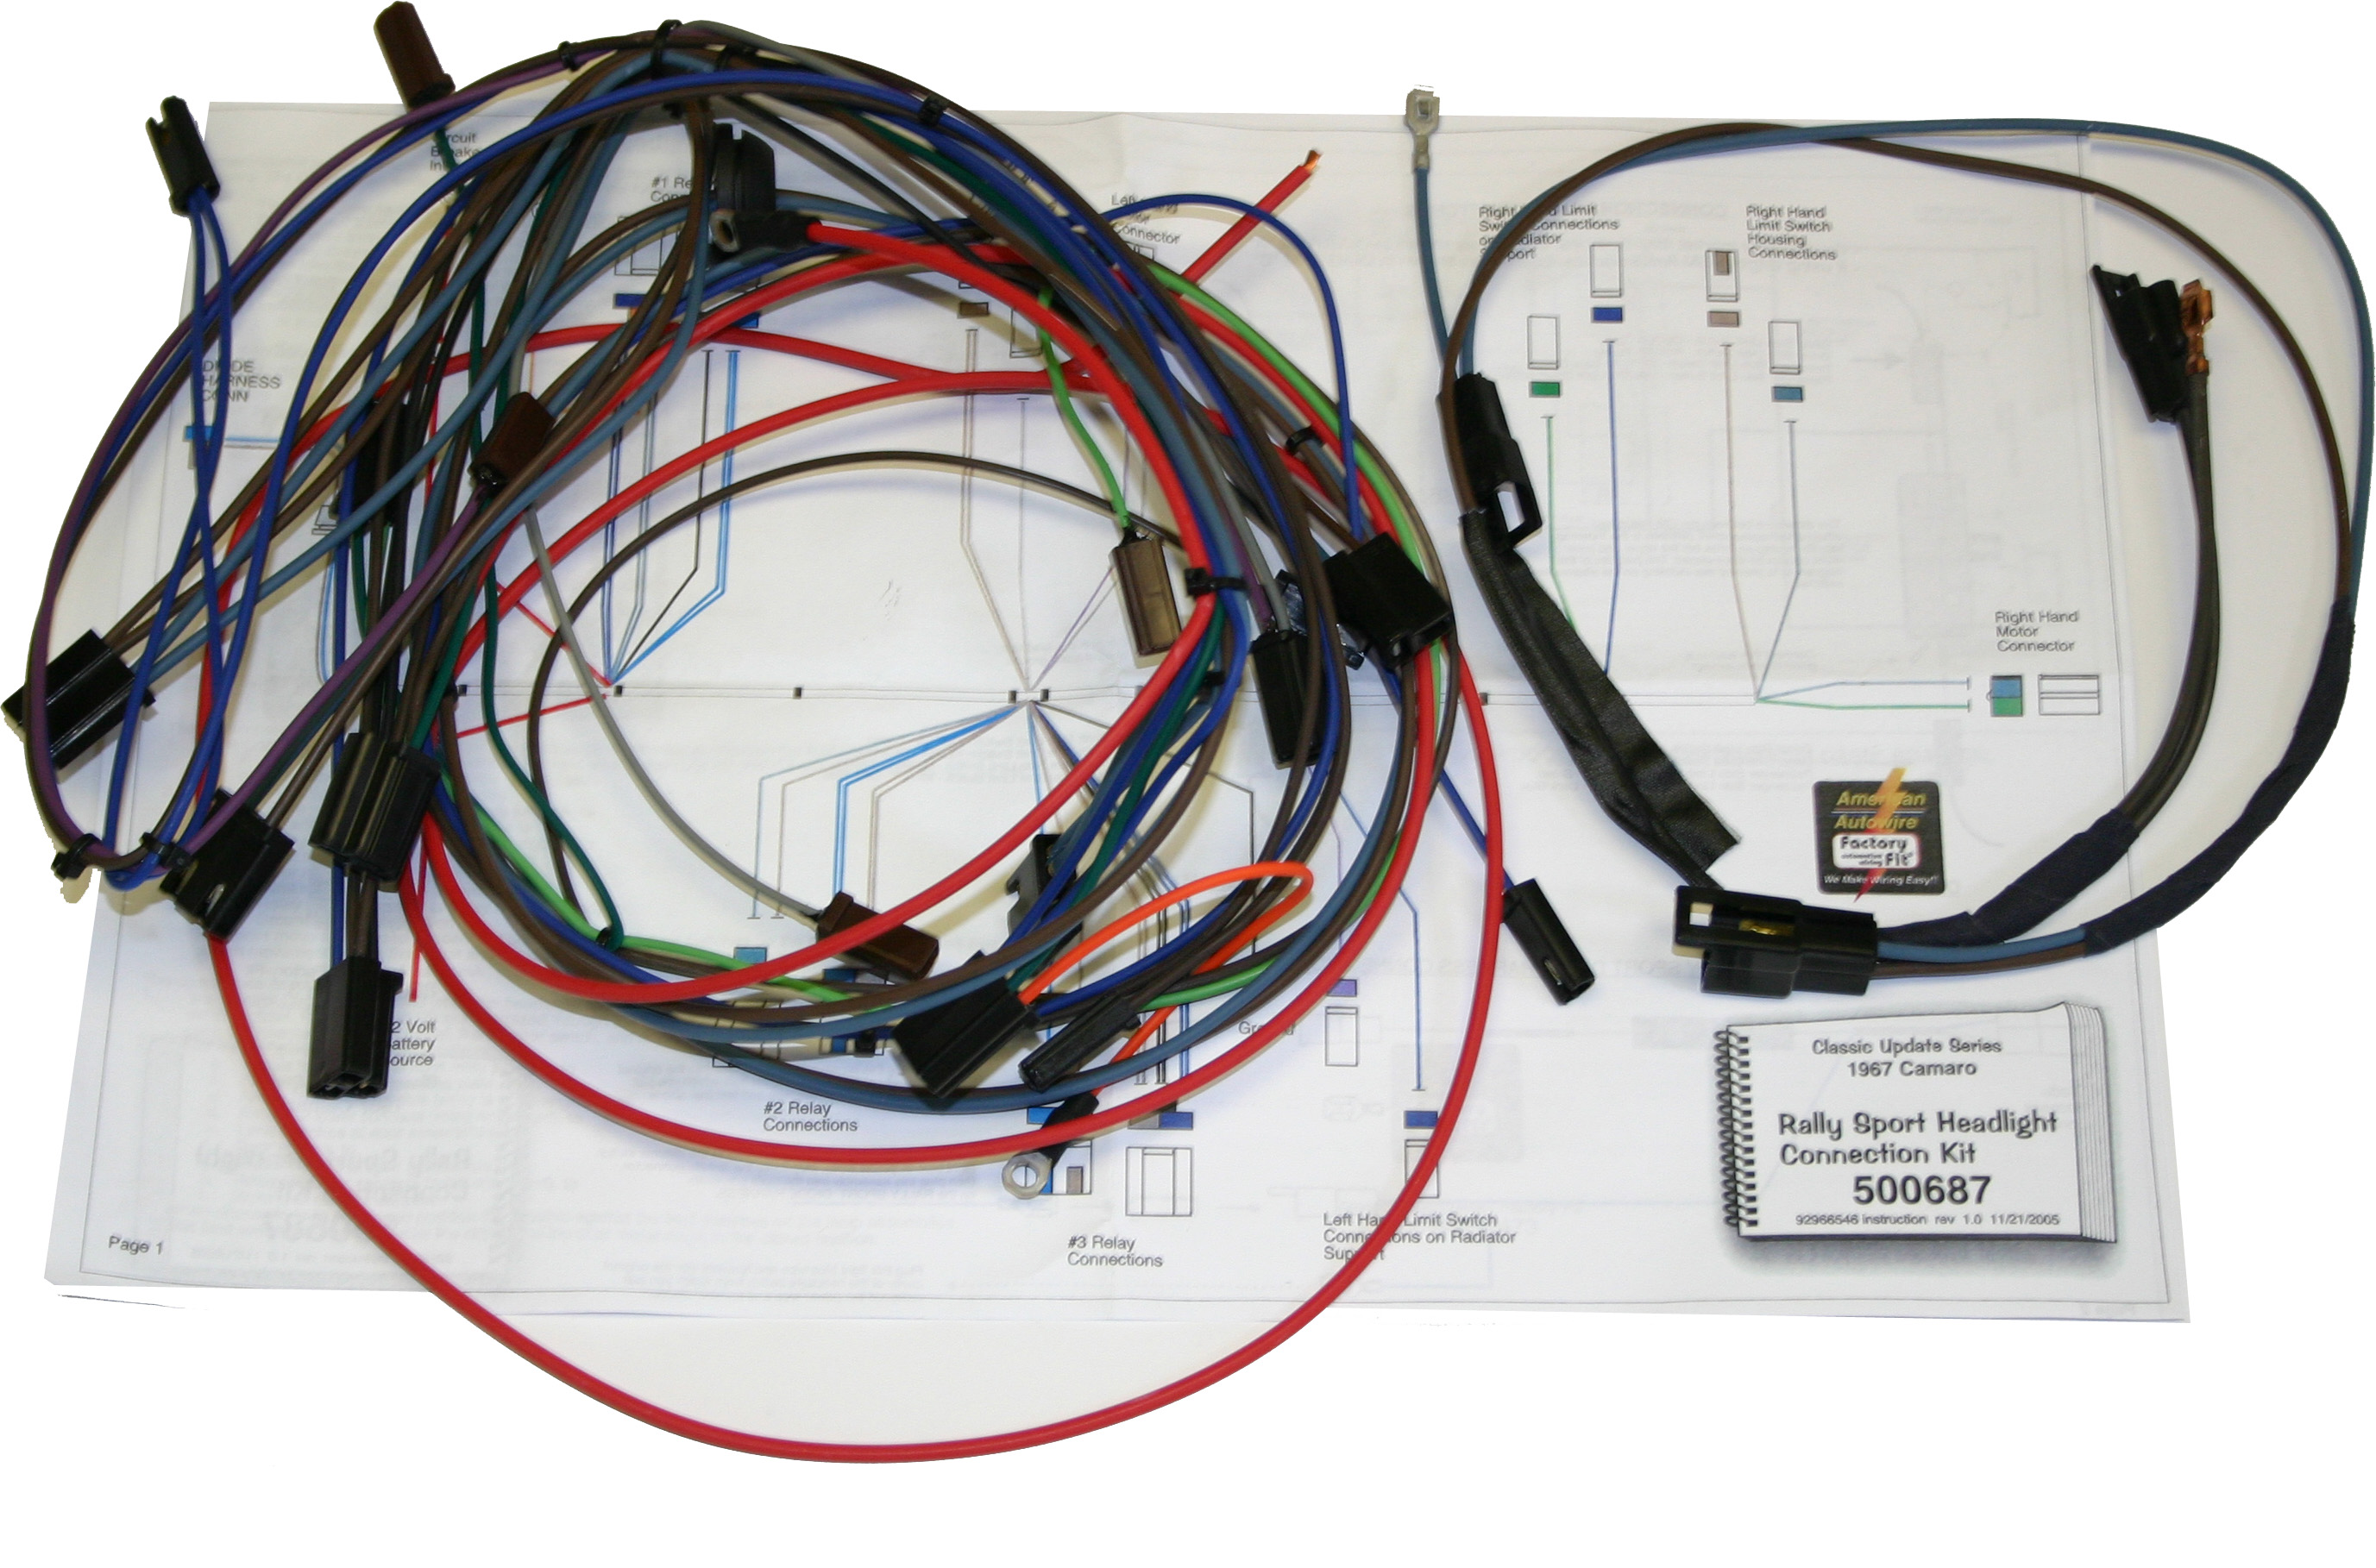 500773 67 68 camaro firebird classic update wiring harness 500661 1969 Firebird Trans AM Wiring Harness at bayanpartner.co